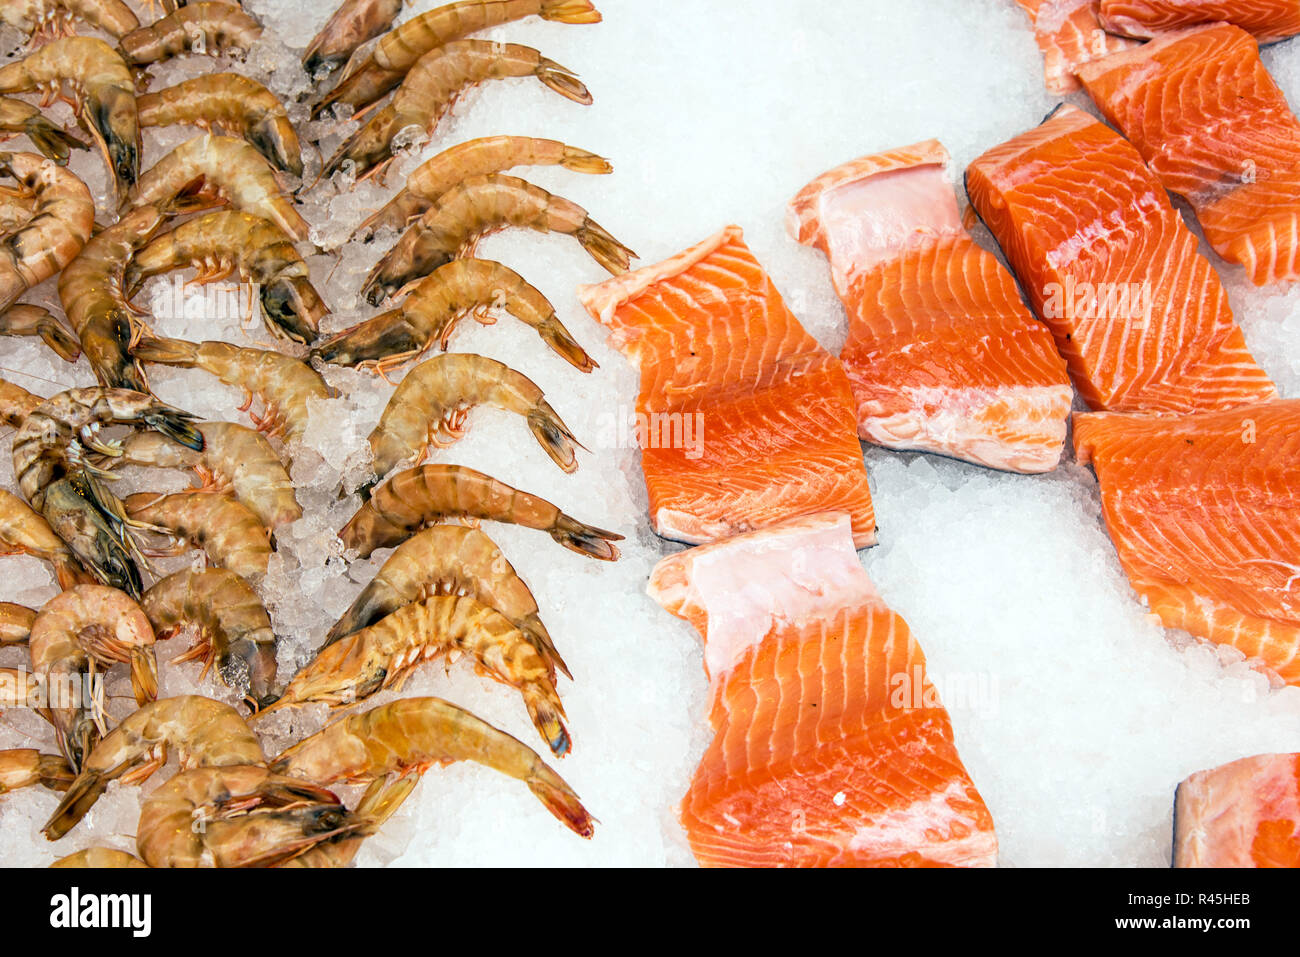 salmon and shrimps at a market in istanbul - Stock Image